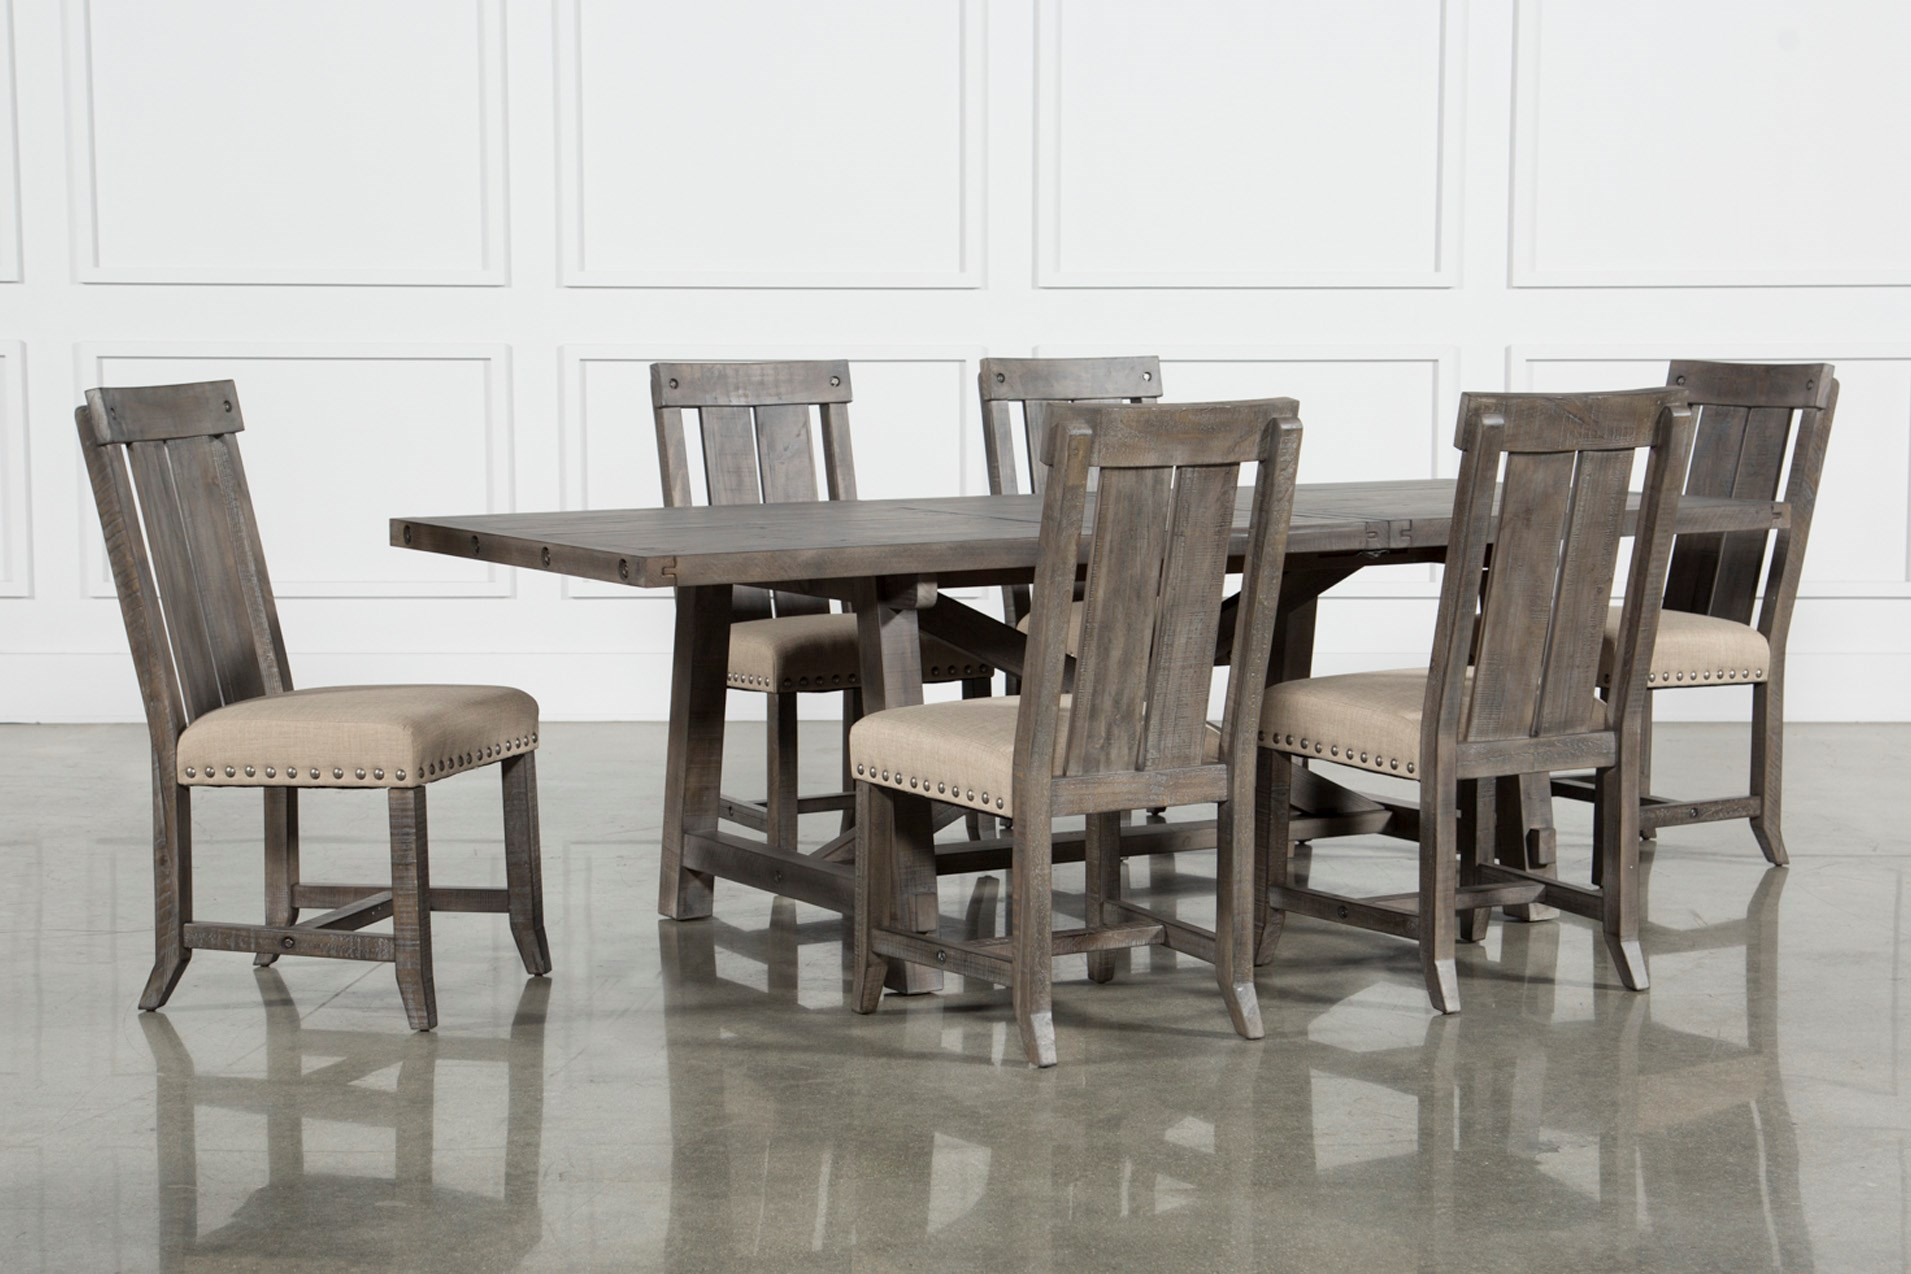 7 piece dining set with bench classy dining jaxon grey piece rectangle extension dining set wwood chairs qty 1 has been successfully added to your cart